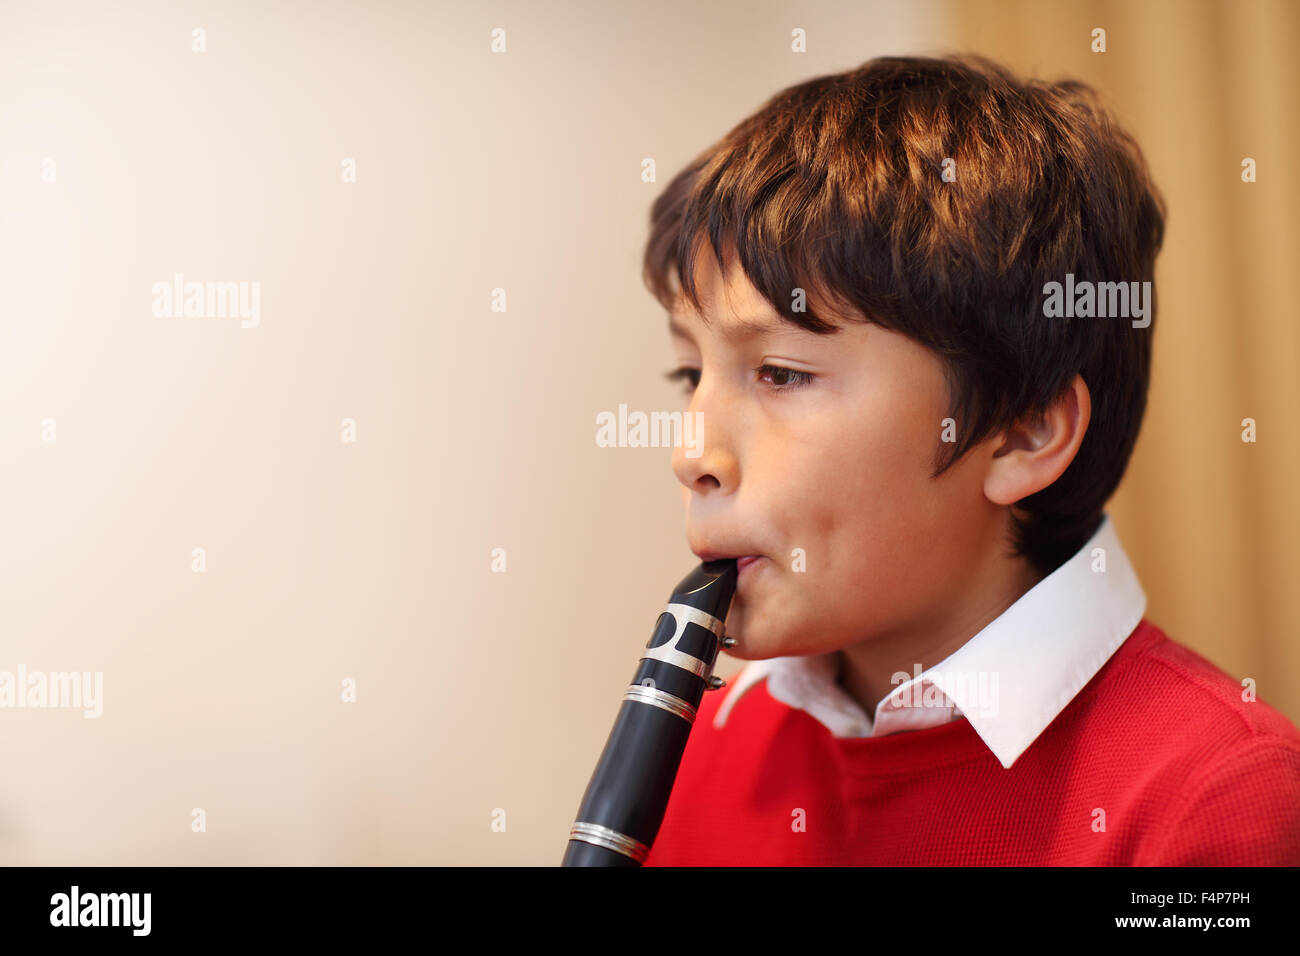 Young boy playing the clarinet - shallow depth of field - warm tones. Copy space - Stock Image